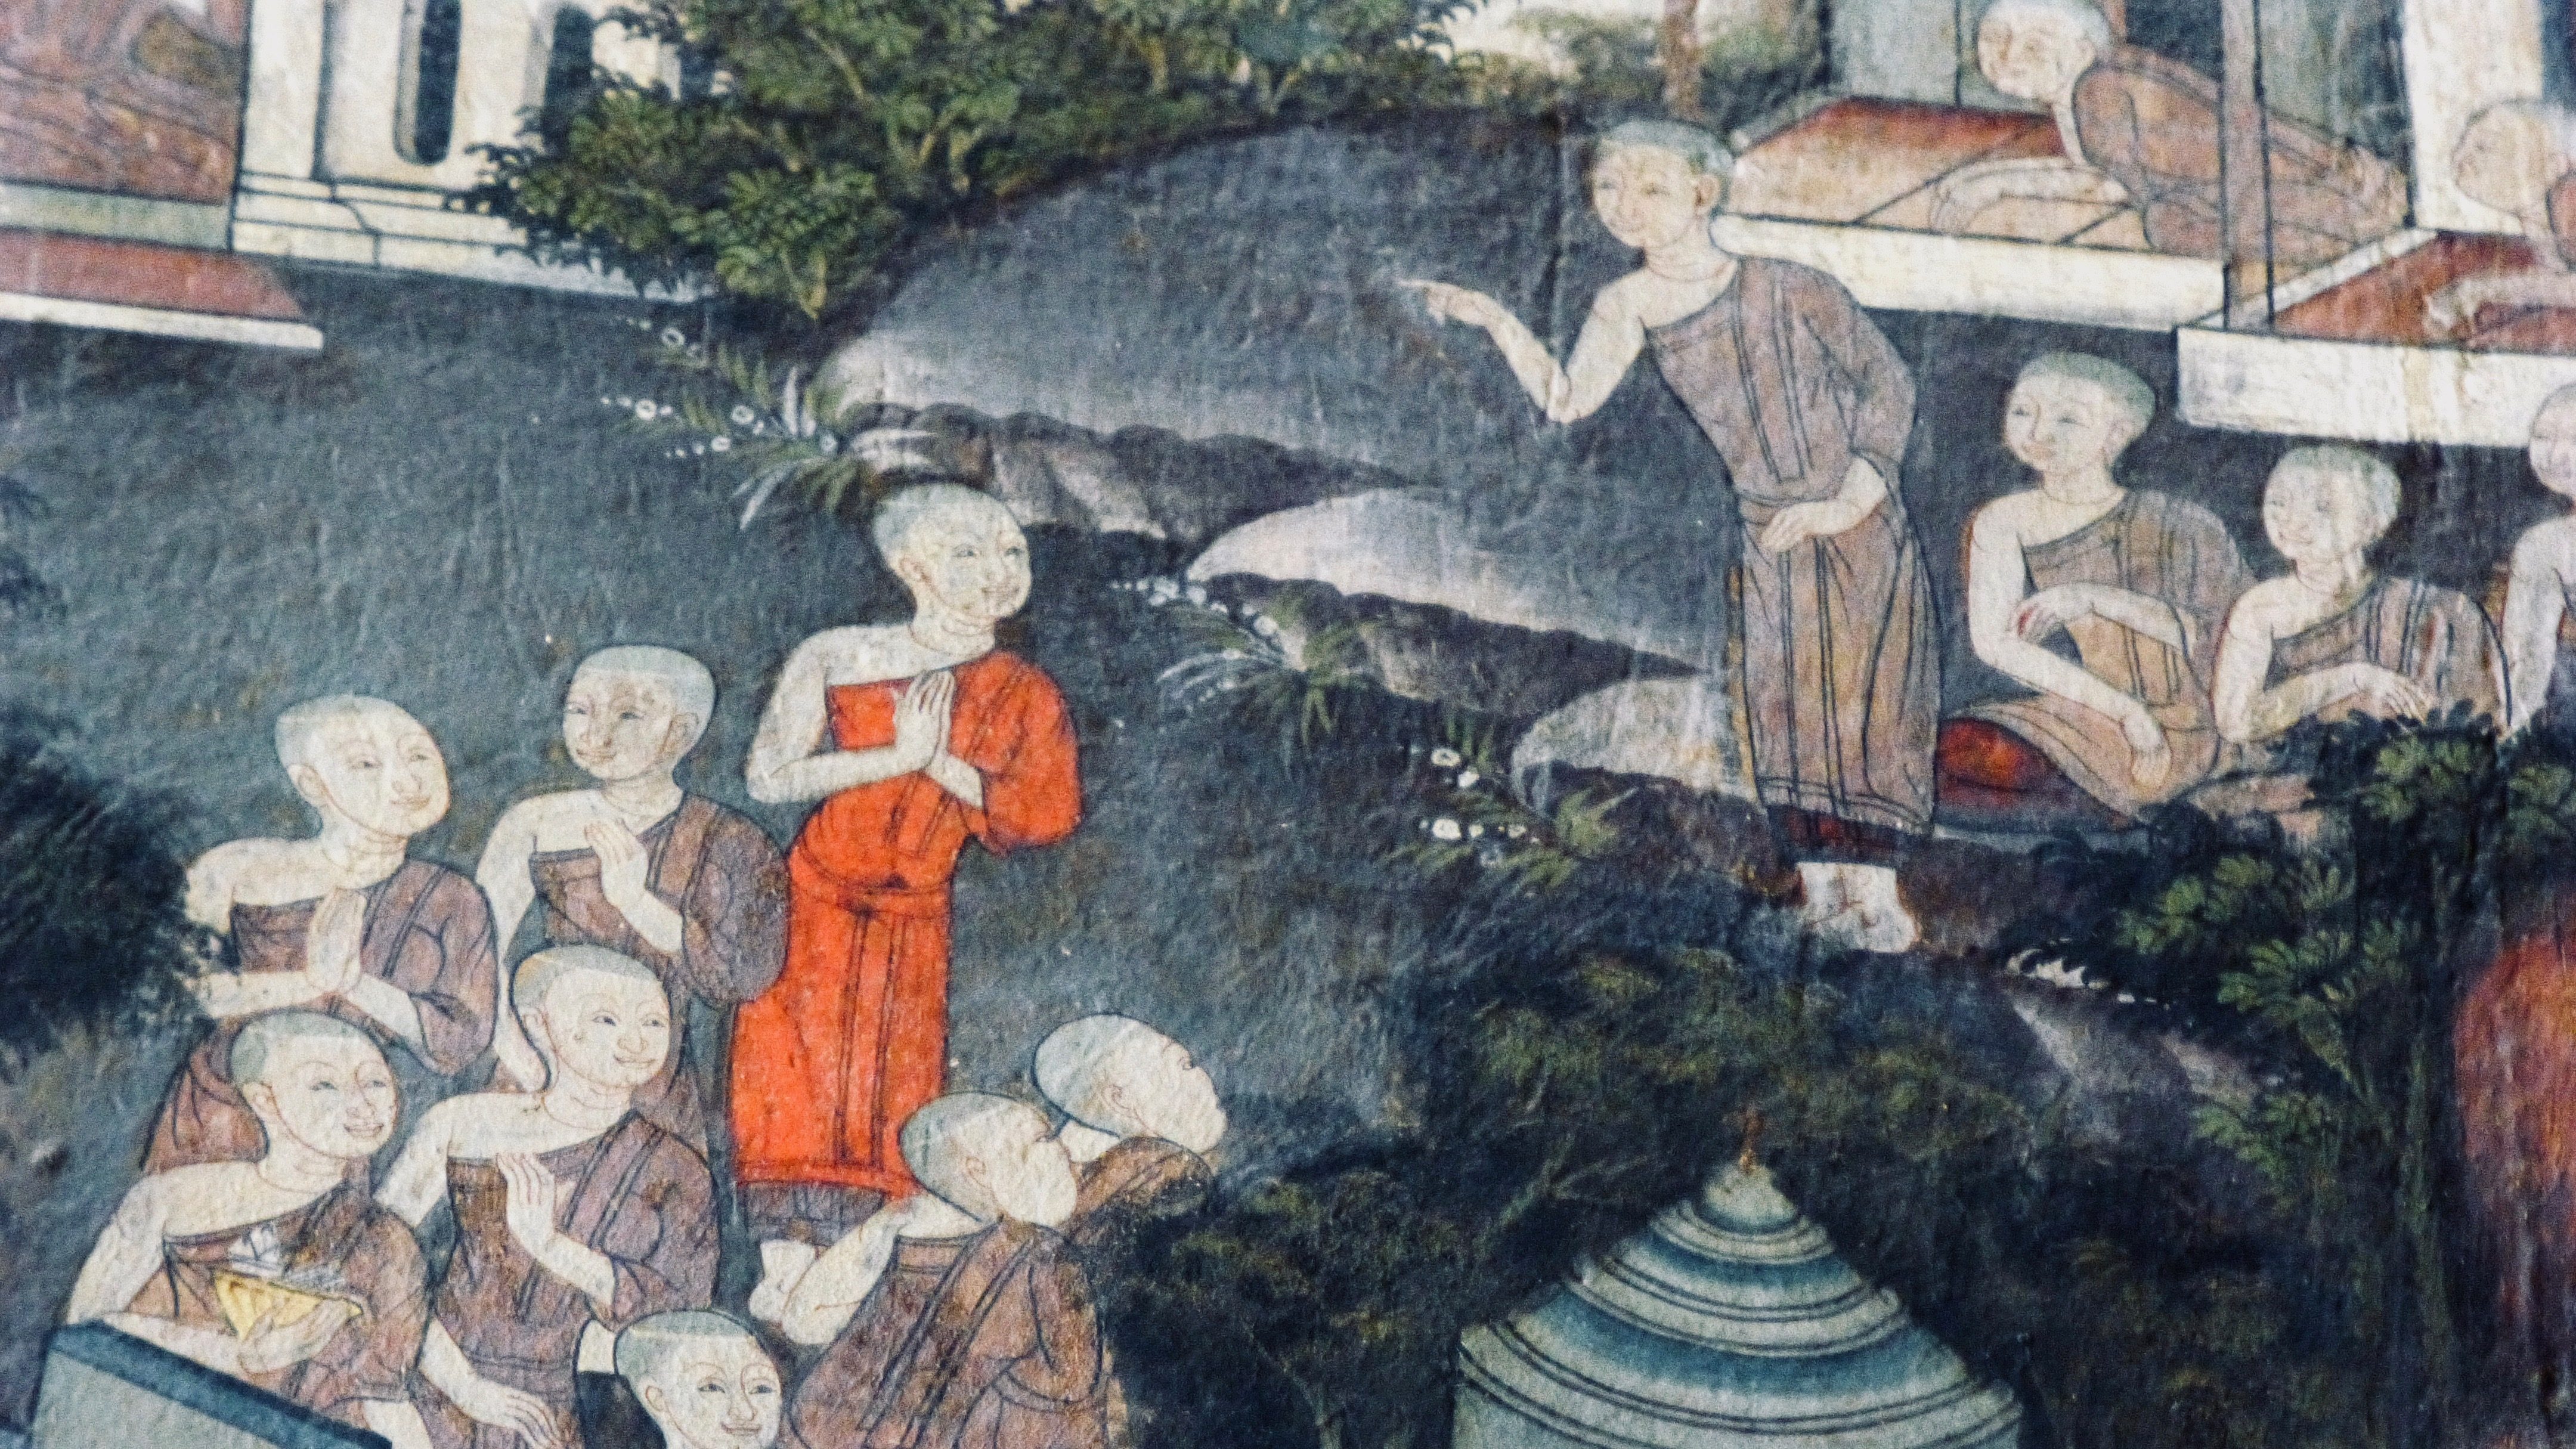 The Buddha's aunt led the first women's rights march in recorded history